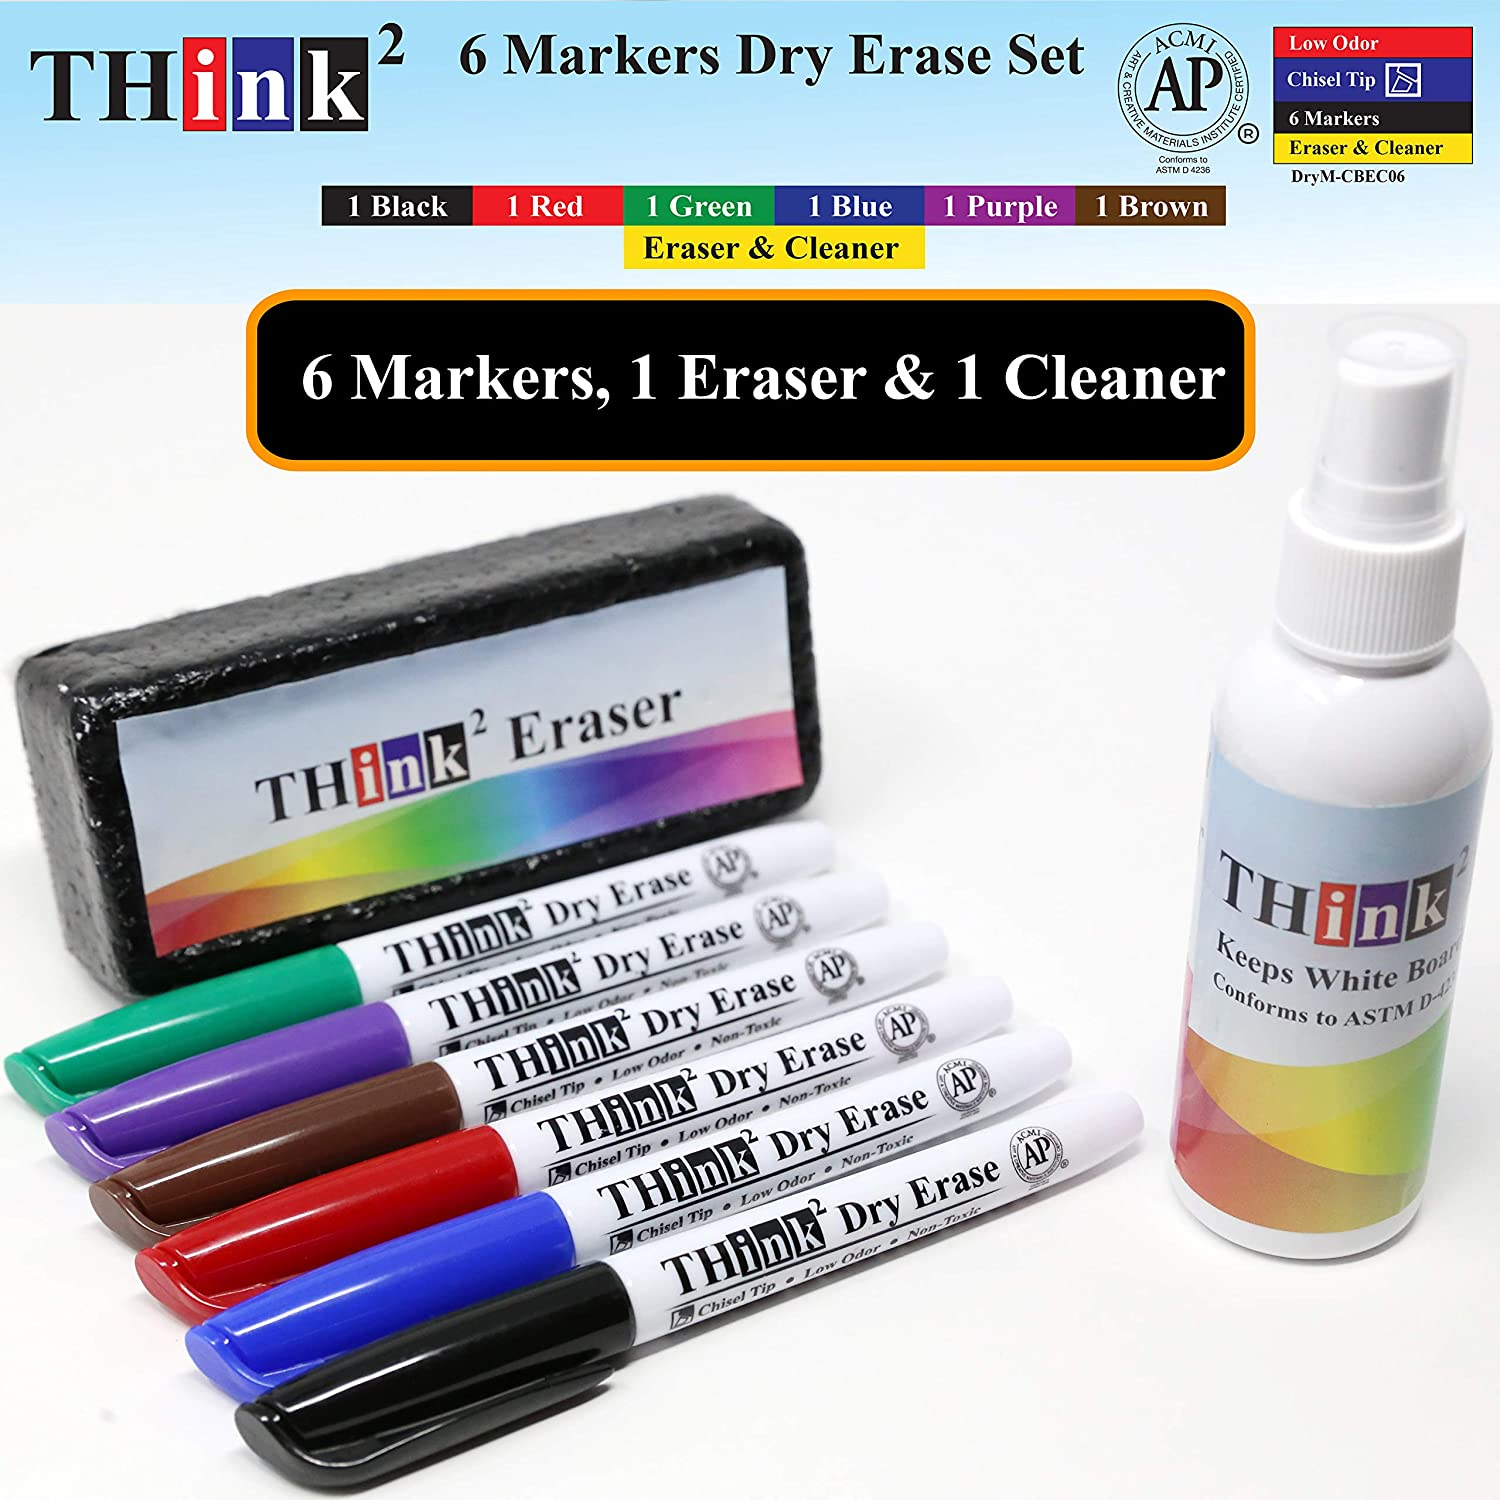 [6 Color Dry Erase Markers] Think2 Chisel Tip Markers with Eraser & Cleaner Set. (1 Black, 1 Red, 1 Blue, 1 Green, 1 Purple, 1 Brown) AP Certified German Ink. For Kids, Classroom, Office, Home : Office Products